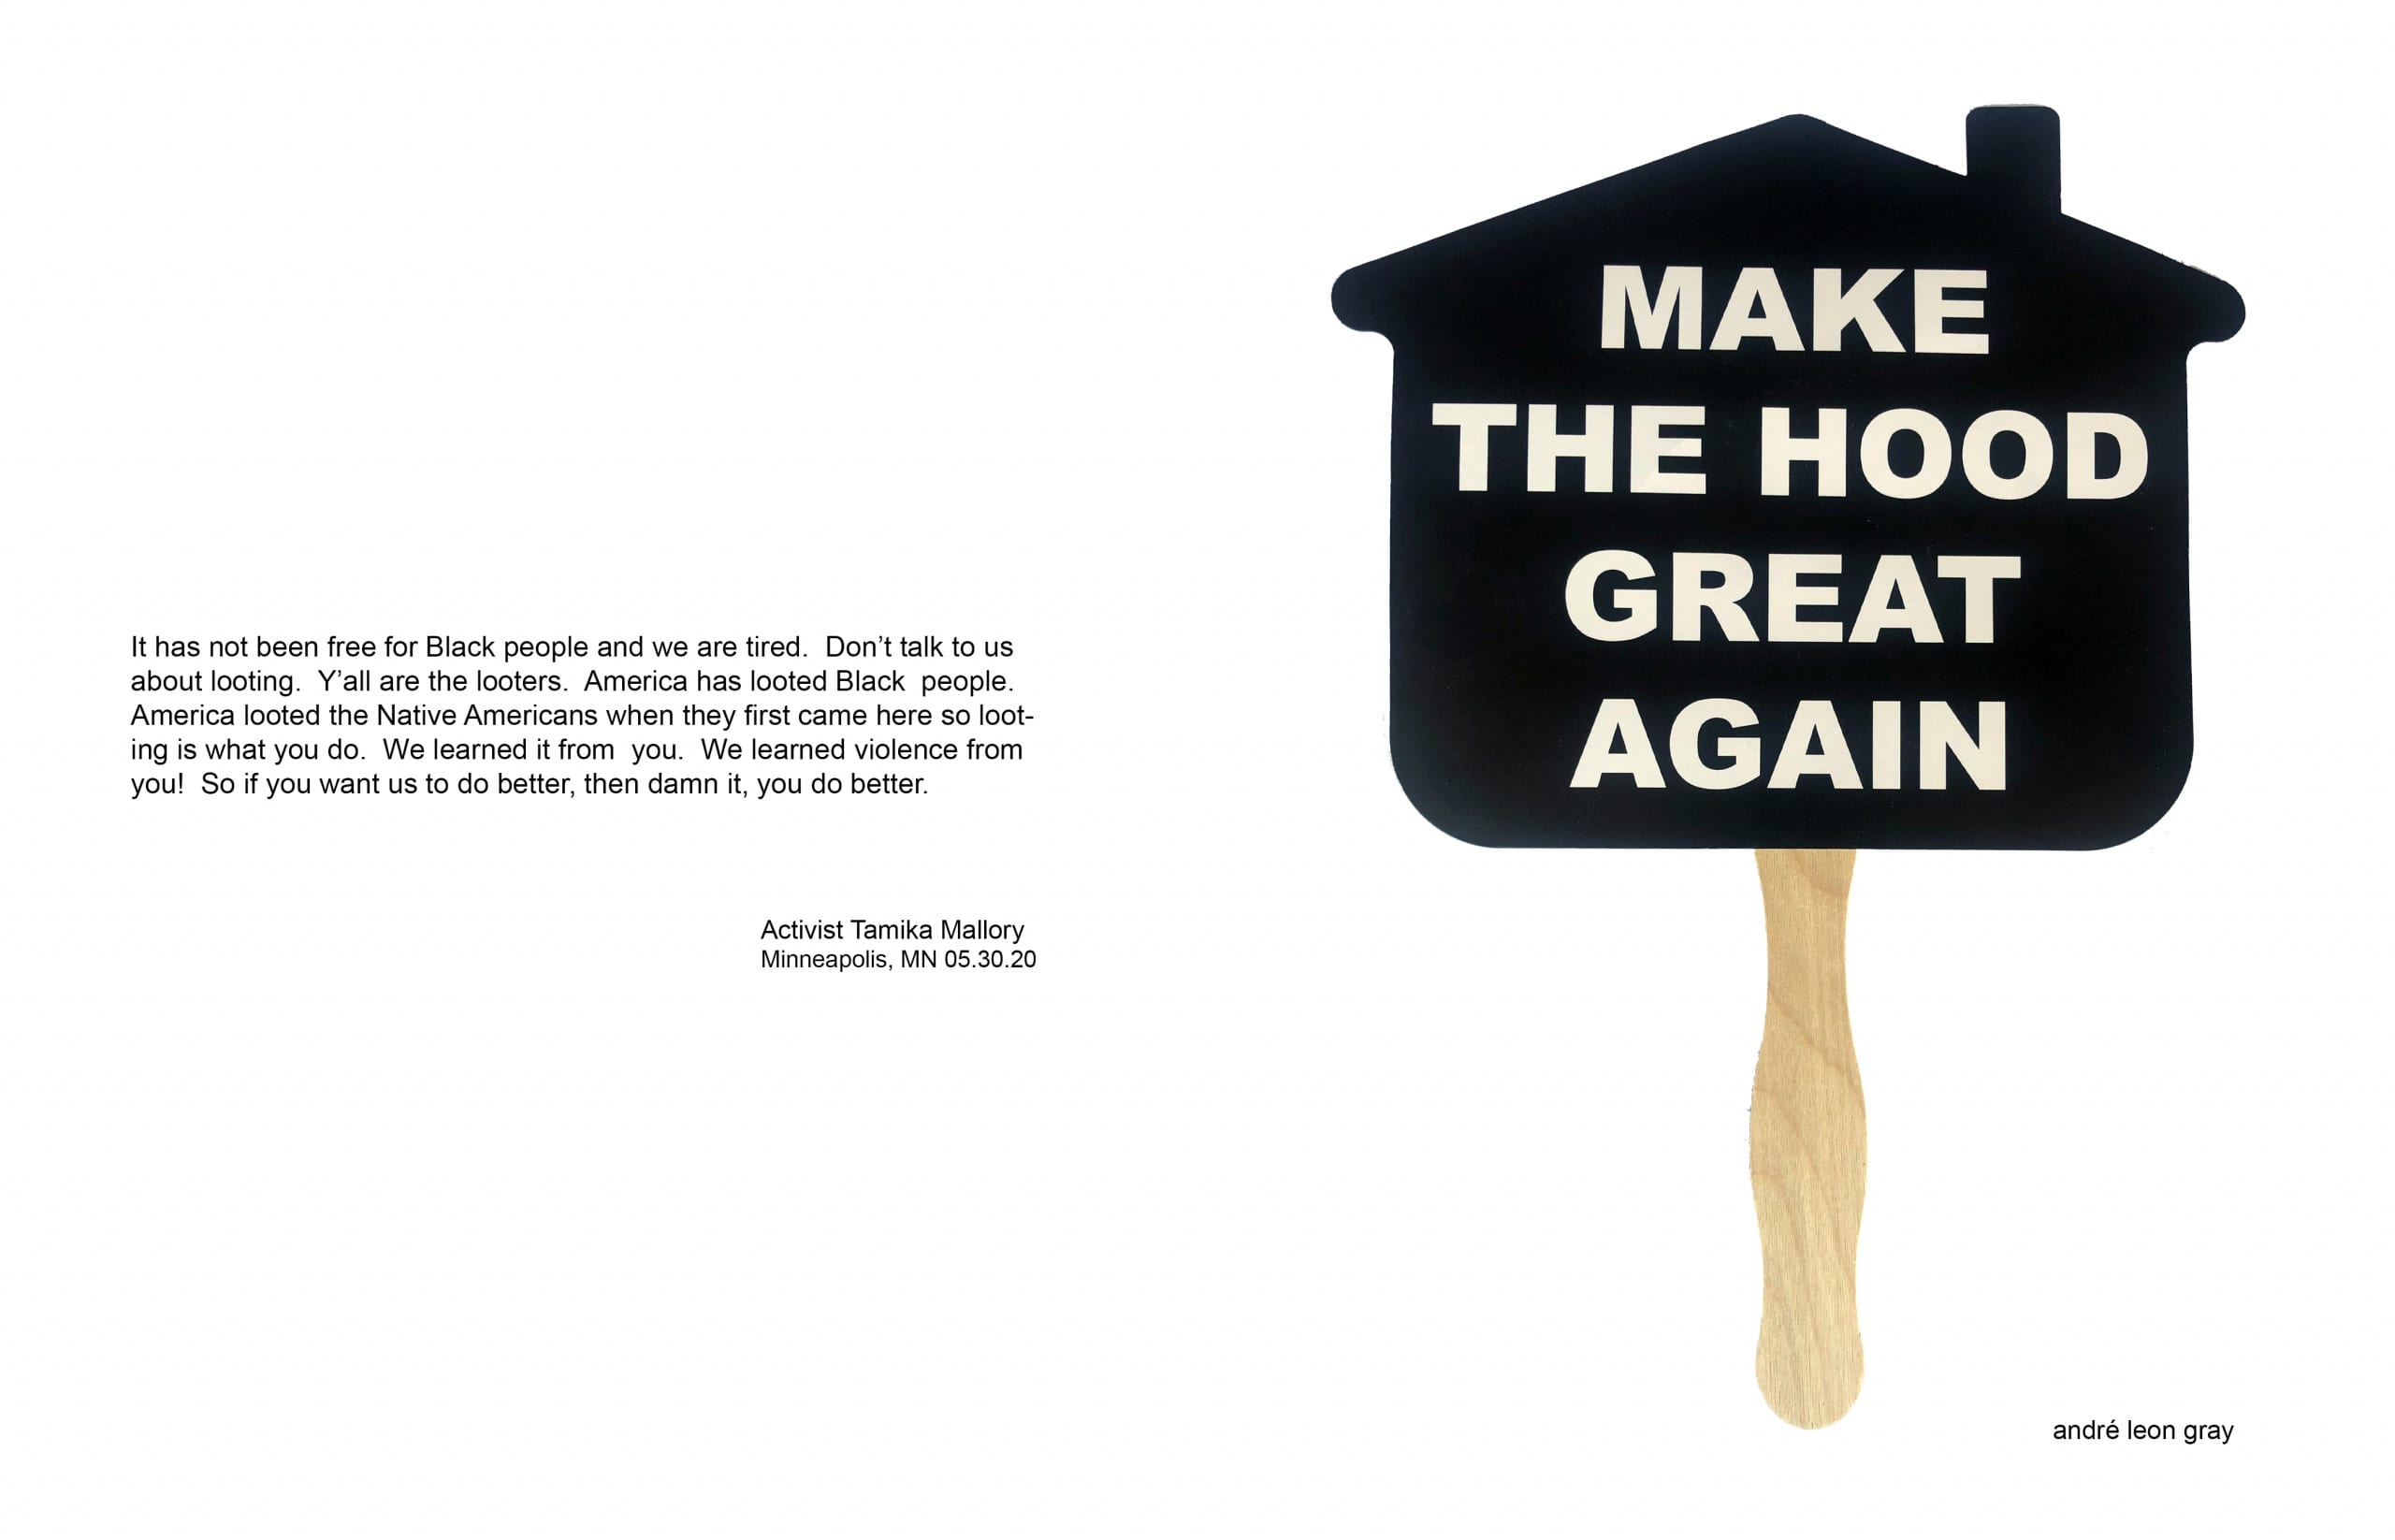 """To left, a quote from activist Tamika Mallory; to right, a fan cut to resemble the silhouette of a house (with a small smokestack) with a slim wooden handle. Printed across the house's black silhouette, text reads """"MAKE THE HOOD GREAT AGAIN"""" in all white bold capital letters"""